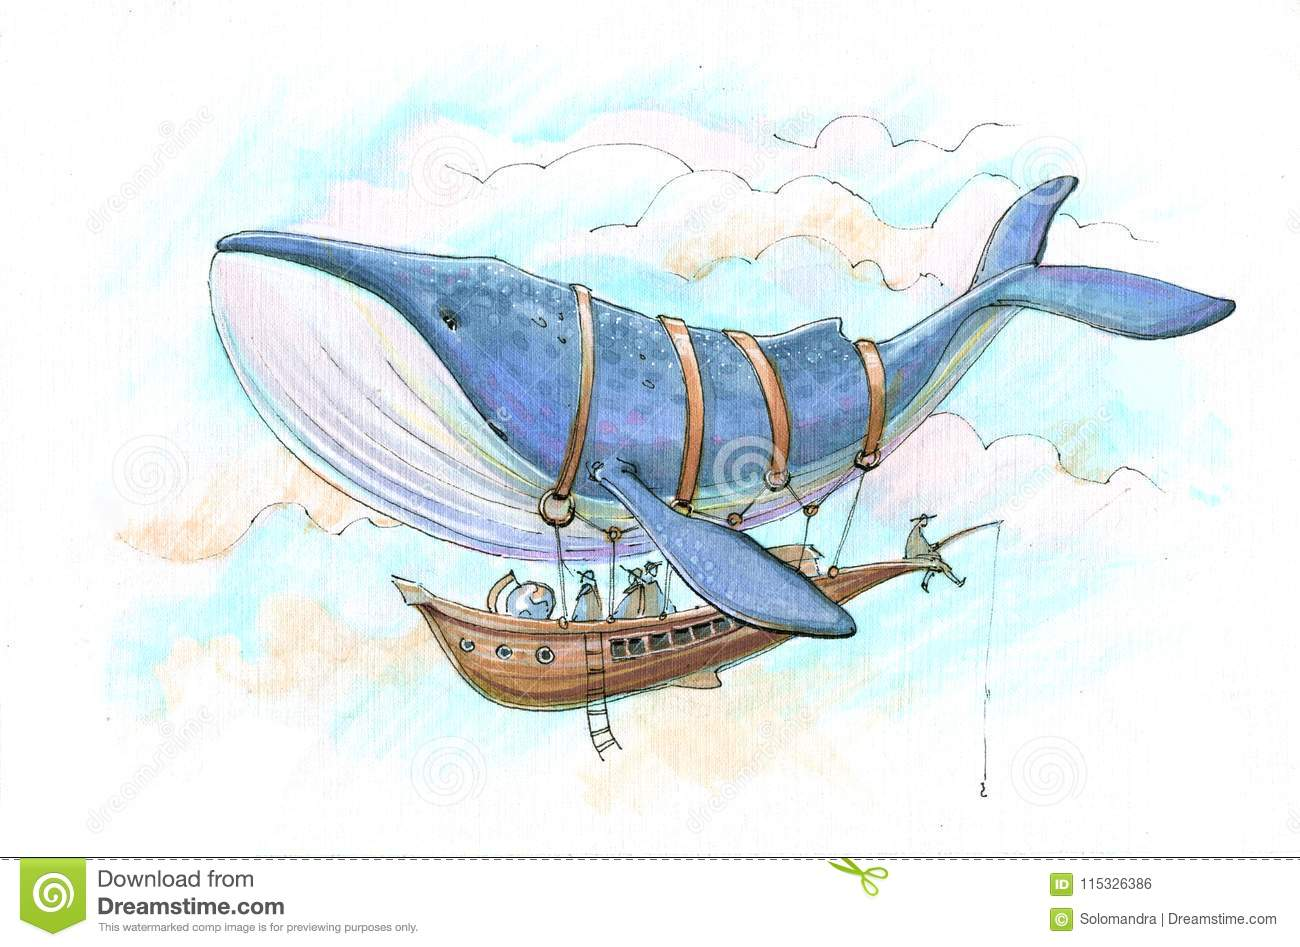 Whale airship journey